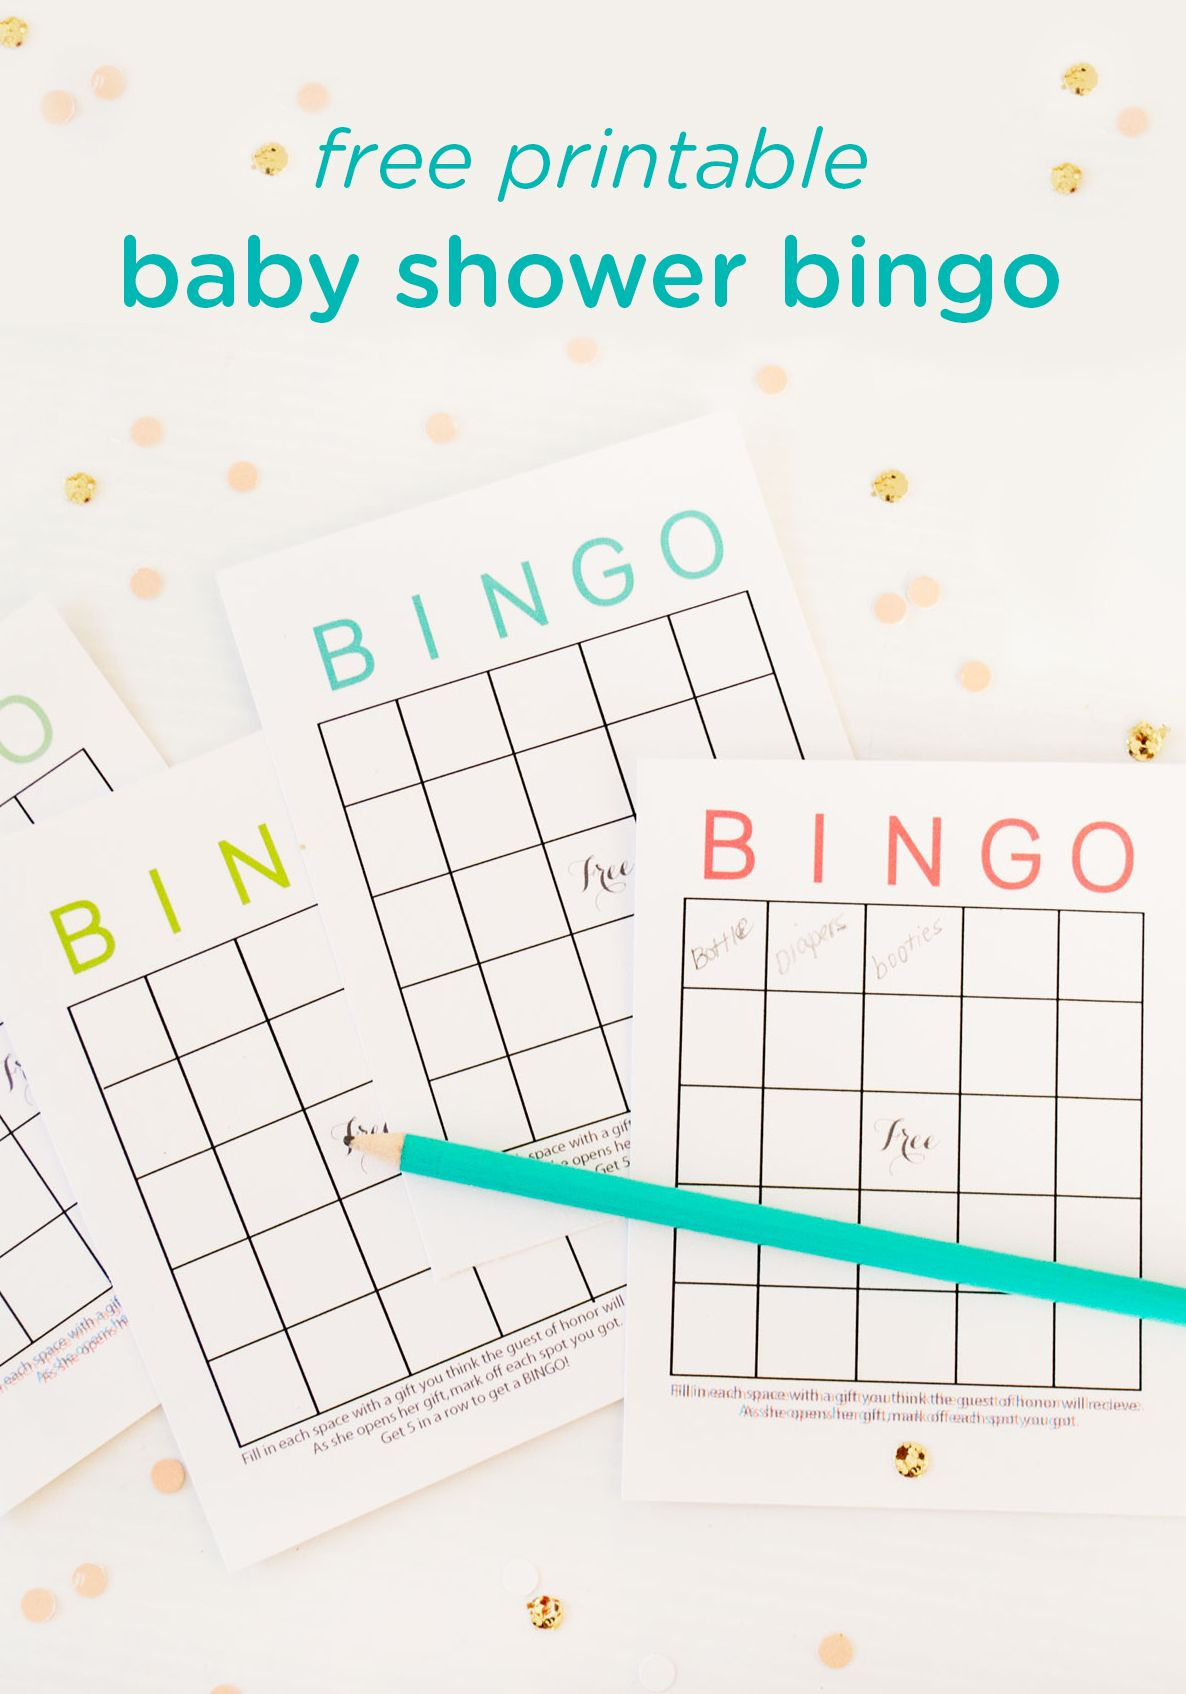 Free Printable Baby Shower Bingo Cards | Baby Shower Bingo